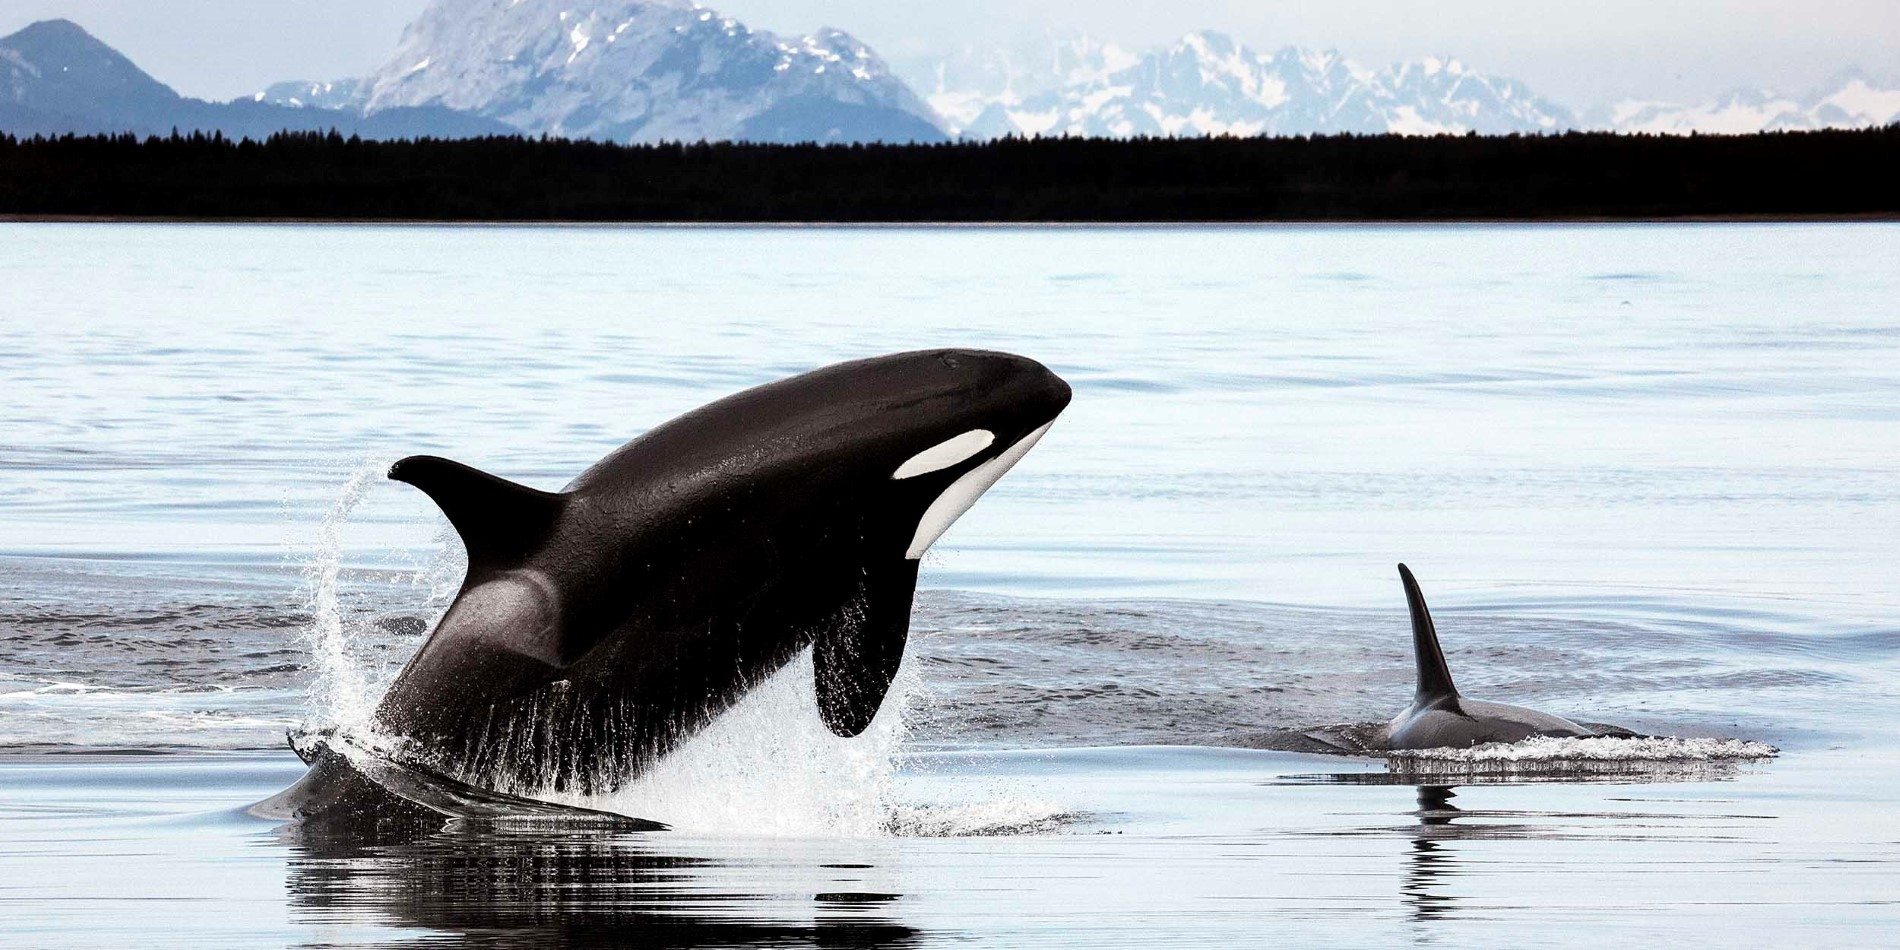 Orcas_in_Alaska©Christopher PMichel-CC BY 2_0_2500x1250.jpg